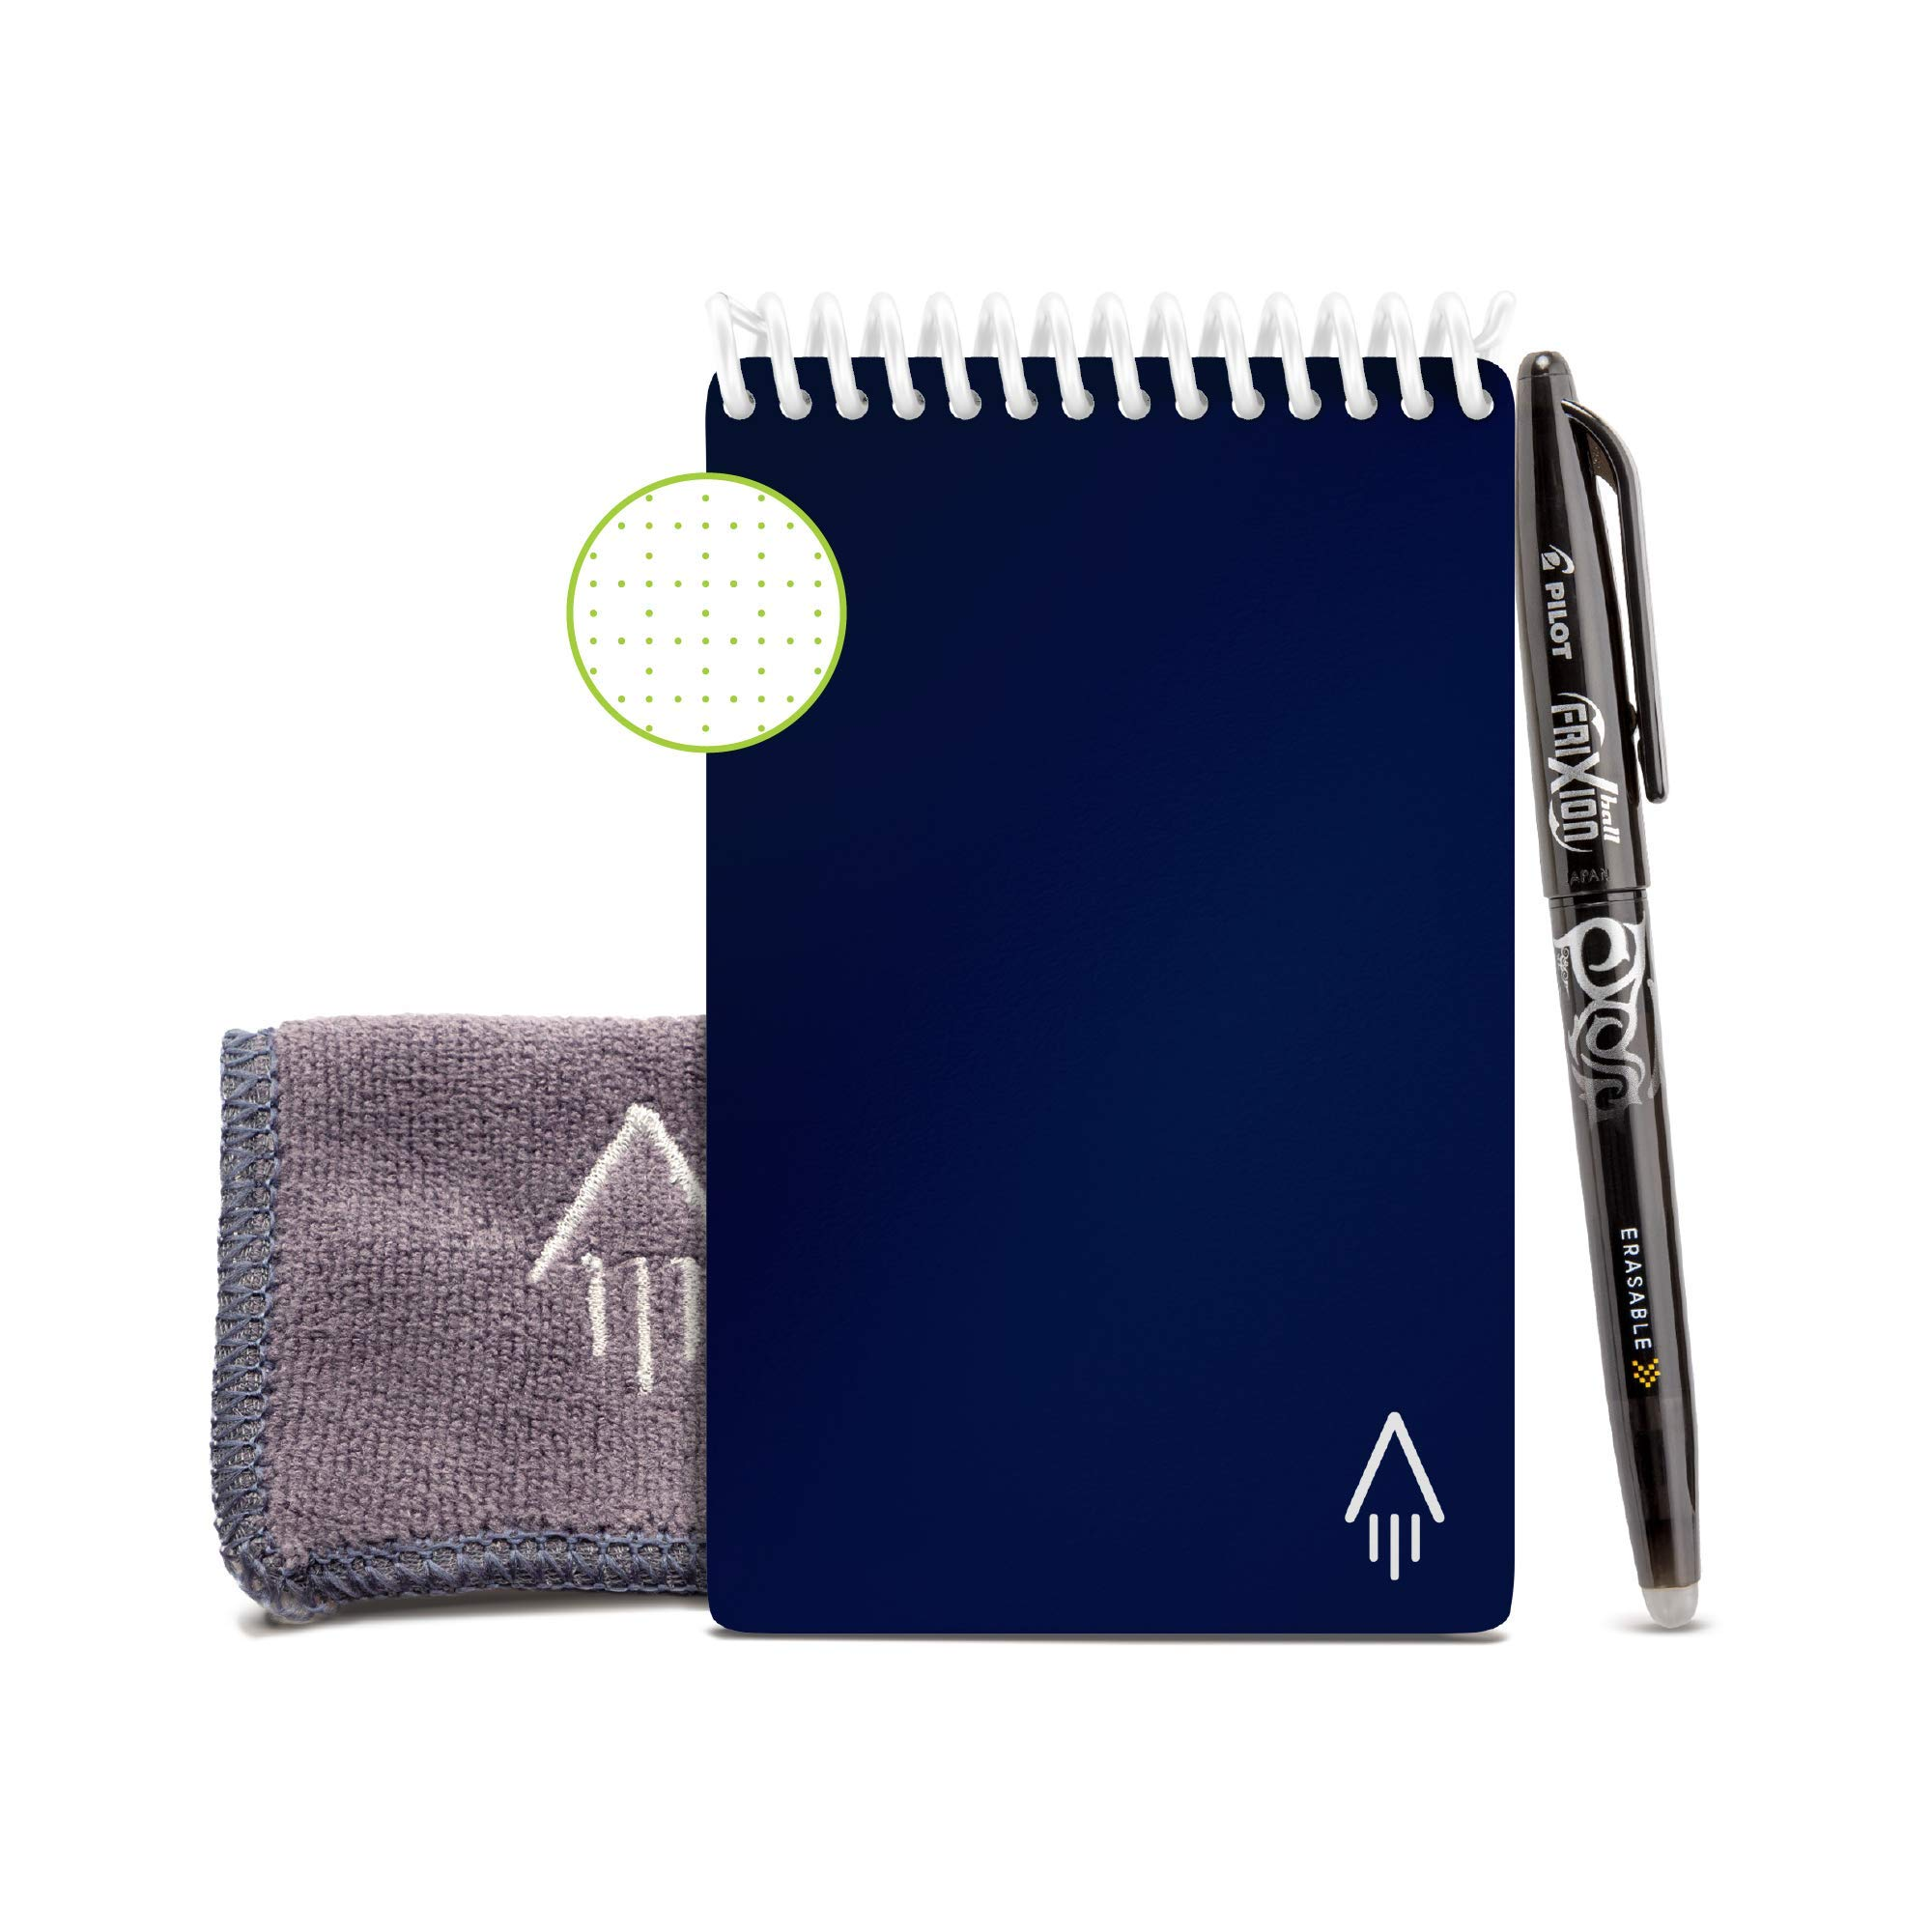 """Rocketbook Smart Reusable Notebook - Dotted Grid Eco-Friendly Notebook with 1 Pilot Frixion Pen & 1 Microfiber Cloth Included - Midnight Blue Cover, Mini Size (3.5"""" x 5.5"""")"""